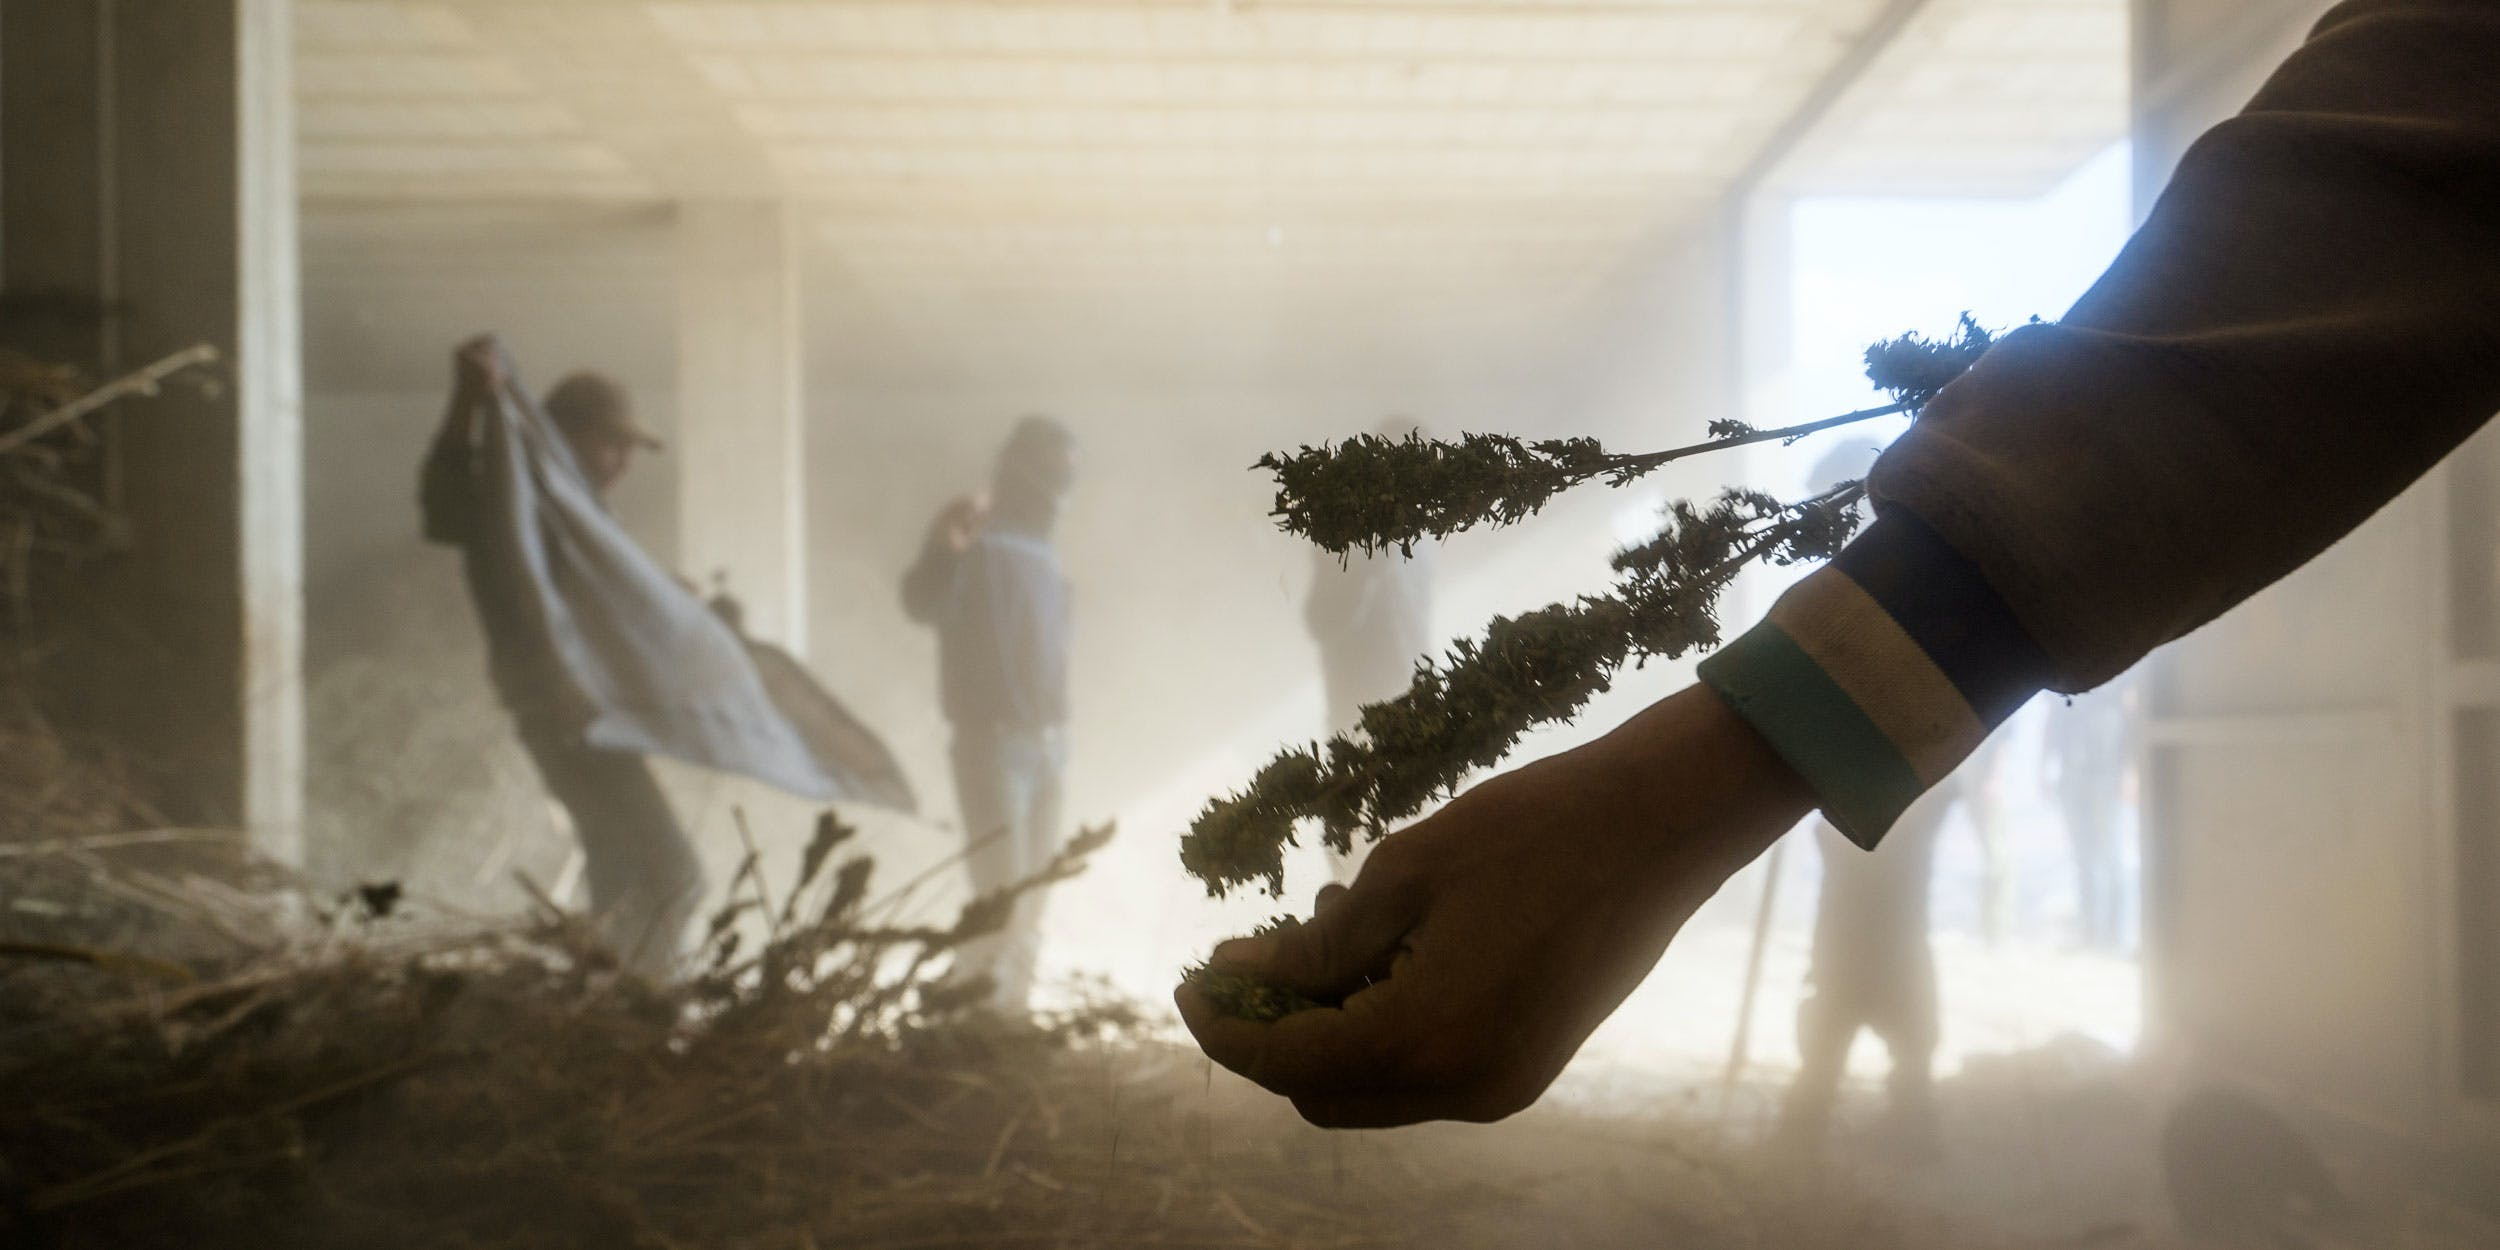 A marijuana processing warehouse in the Beqaa Valley in eastern Lebanon on November 1, 2015. Marijuana is grown openly in many areas of this 75 mile long valley and then processed into hashish in large warehouses during the cold winter months. The Syrian border runs the entire eastern length of the valley which over the the past two years has been a region of extreme tension and skirmishes as ISIS incursions increase into the small Lebanese border villages with most being protected by combined Hezbollah and Lebanese Army forces. Despite the massive military presence, the valley has always been one of the most fertile strips of land in the entire Middle East helped largely by the successful Litani hydroelectricity project that was completed in 1967 creating a web of canals that irrigate much of the valley. (Photo by Giles Clarke/Getty Images)